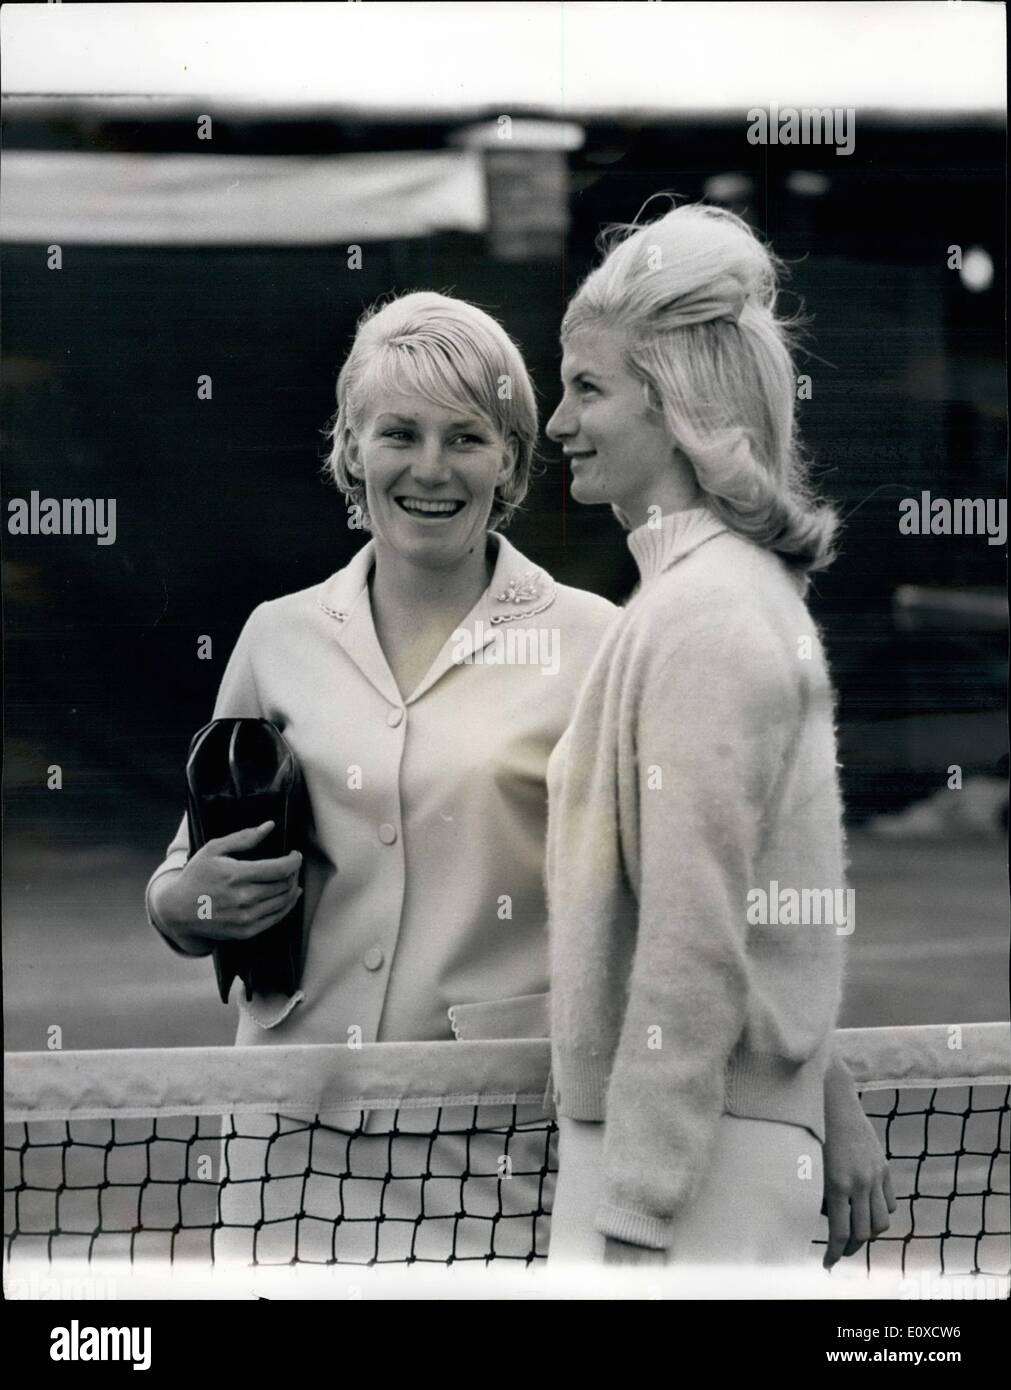 Jun. 06, 1966 - THE ''EMBARRASSING'' SITUATION AT WIMBLEDON SISTER VERSUS SISTER. Two blonde Australian sisters face the most ''embarrassing'' match of their lives today playing against each other at Wimbledon. Last night GAIL and CAROL SHERRIFF both vowed: ''We will play to the death. May the best sister sin''. The girls qualified to meet in the second round after they both won their matches yesterday. Usually when they are drawn against each other the sisters take it in turns to forfeit matches, but this is not allowed at Wimbledon - Stock Image